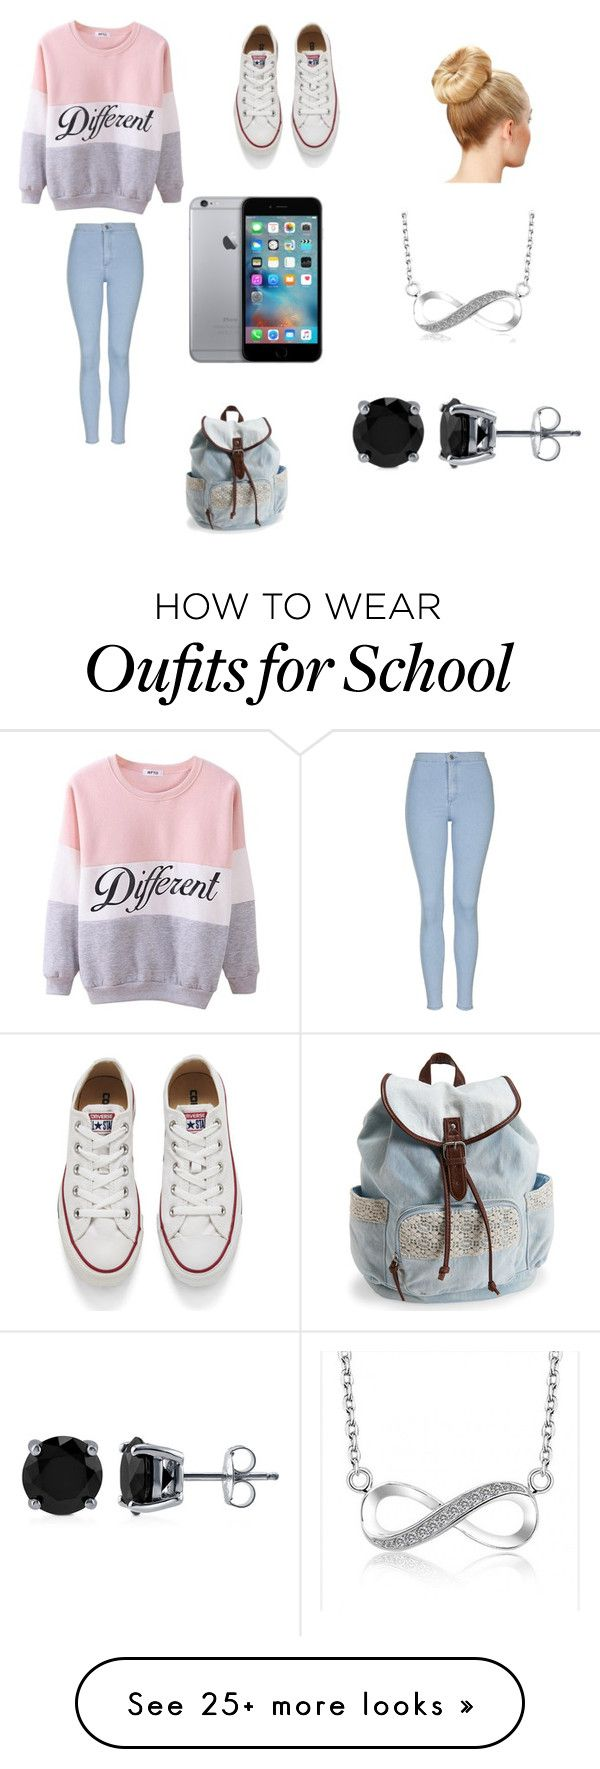 """""""My kind of school day"""" by starbucks-is-bae123 on Polyvore featuring Topshop, Converse, Aéropostale, BERRICLE, women's clothing, women, female, woman, misses and juniors"""